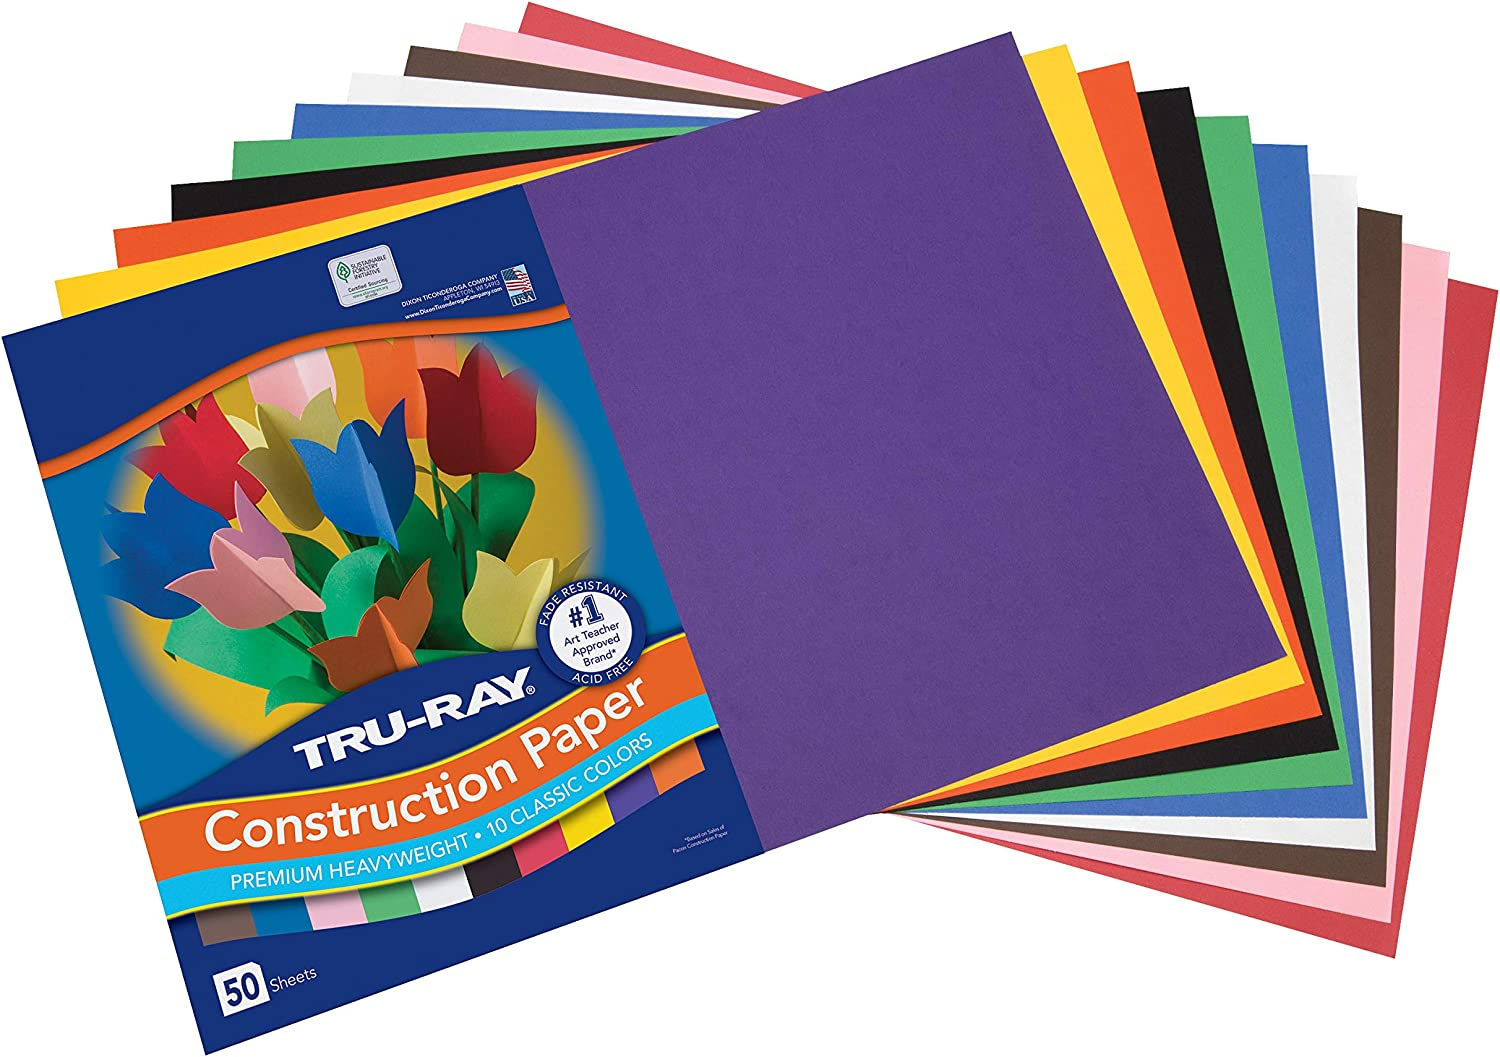 """Tru-Ray Construction Paper, 10 Classic Colors, 12"""" x 18"""", 50 Sheets : Office Products"""